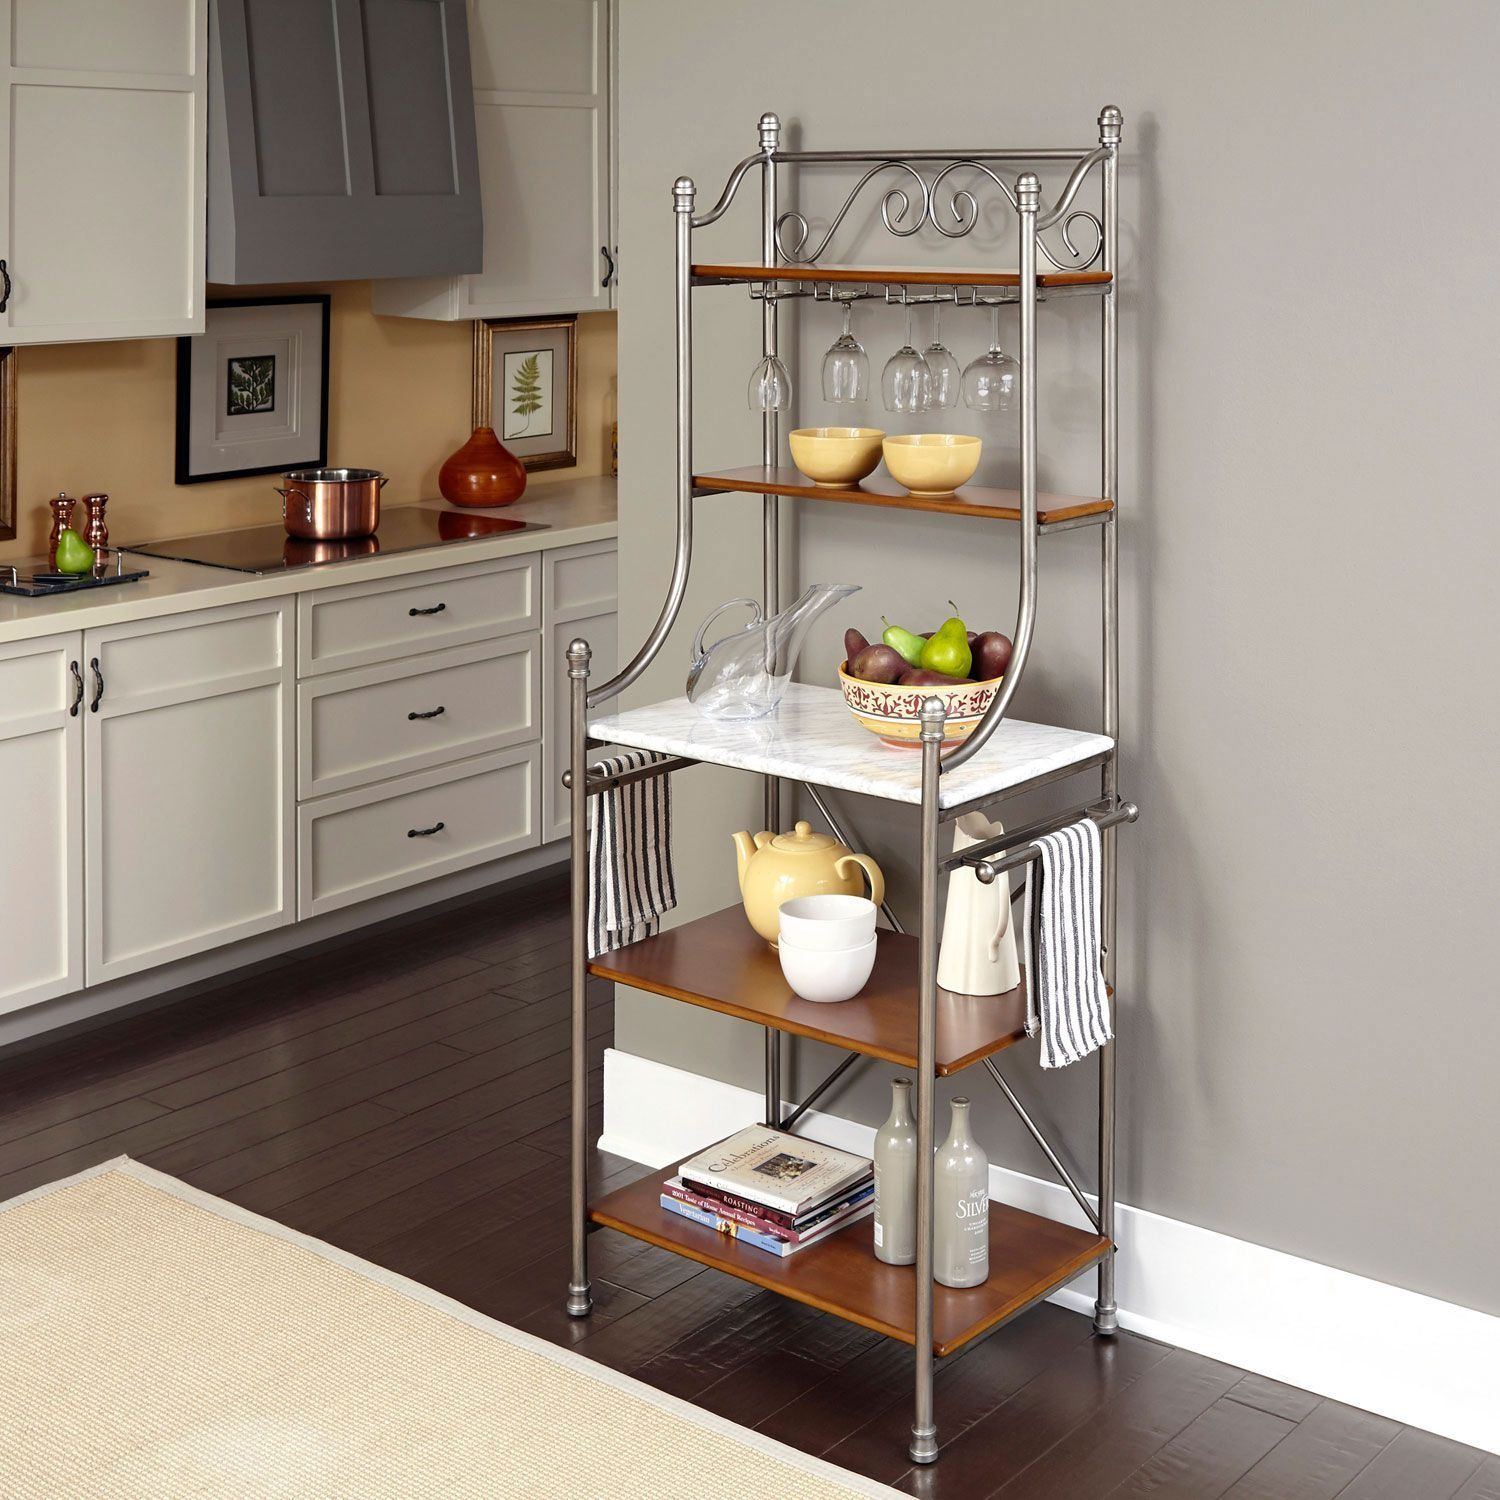 Stainless Steel Bakers Rack With Shelves And Glass Holder